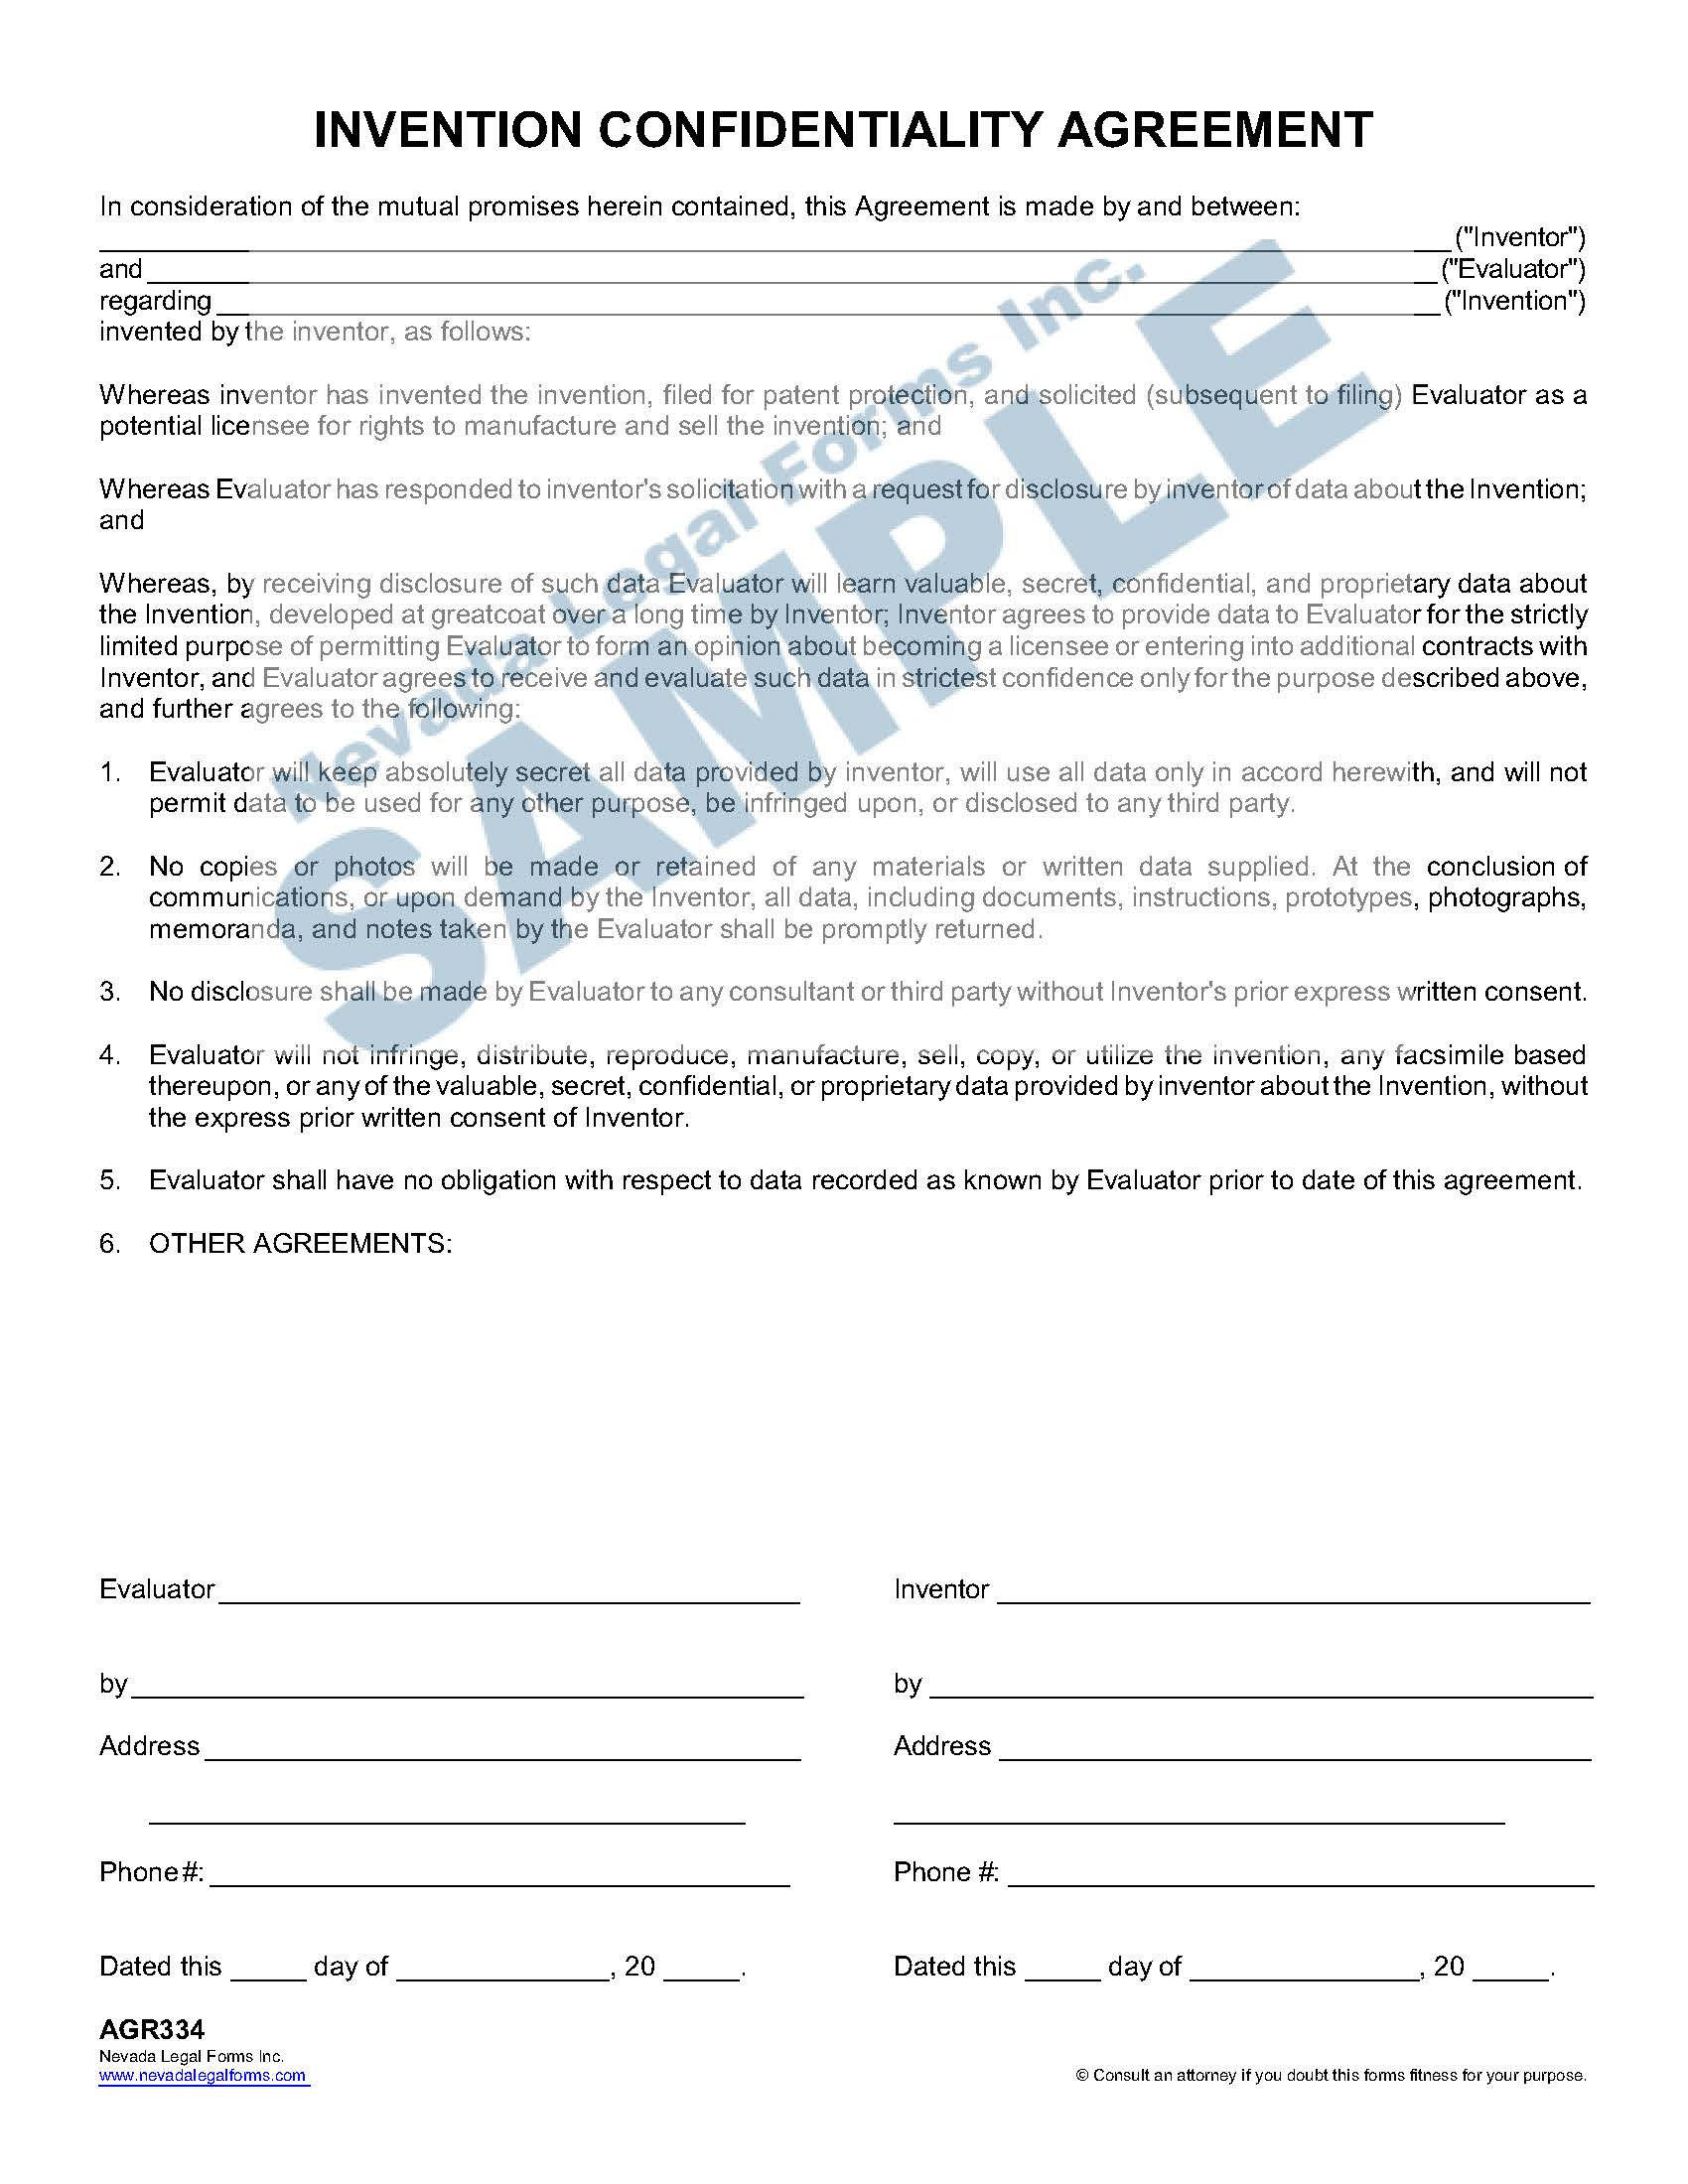 Invention Confidentiality Agreement